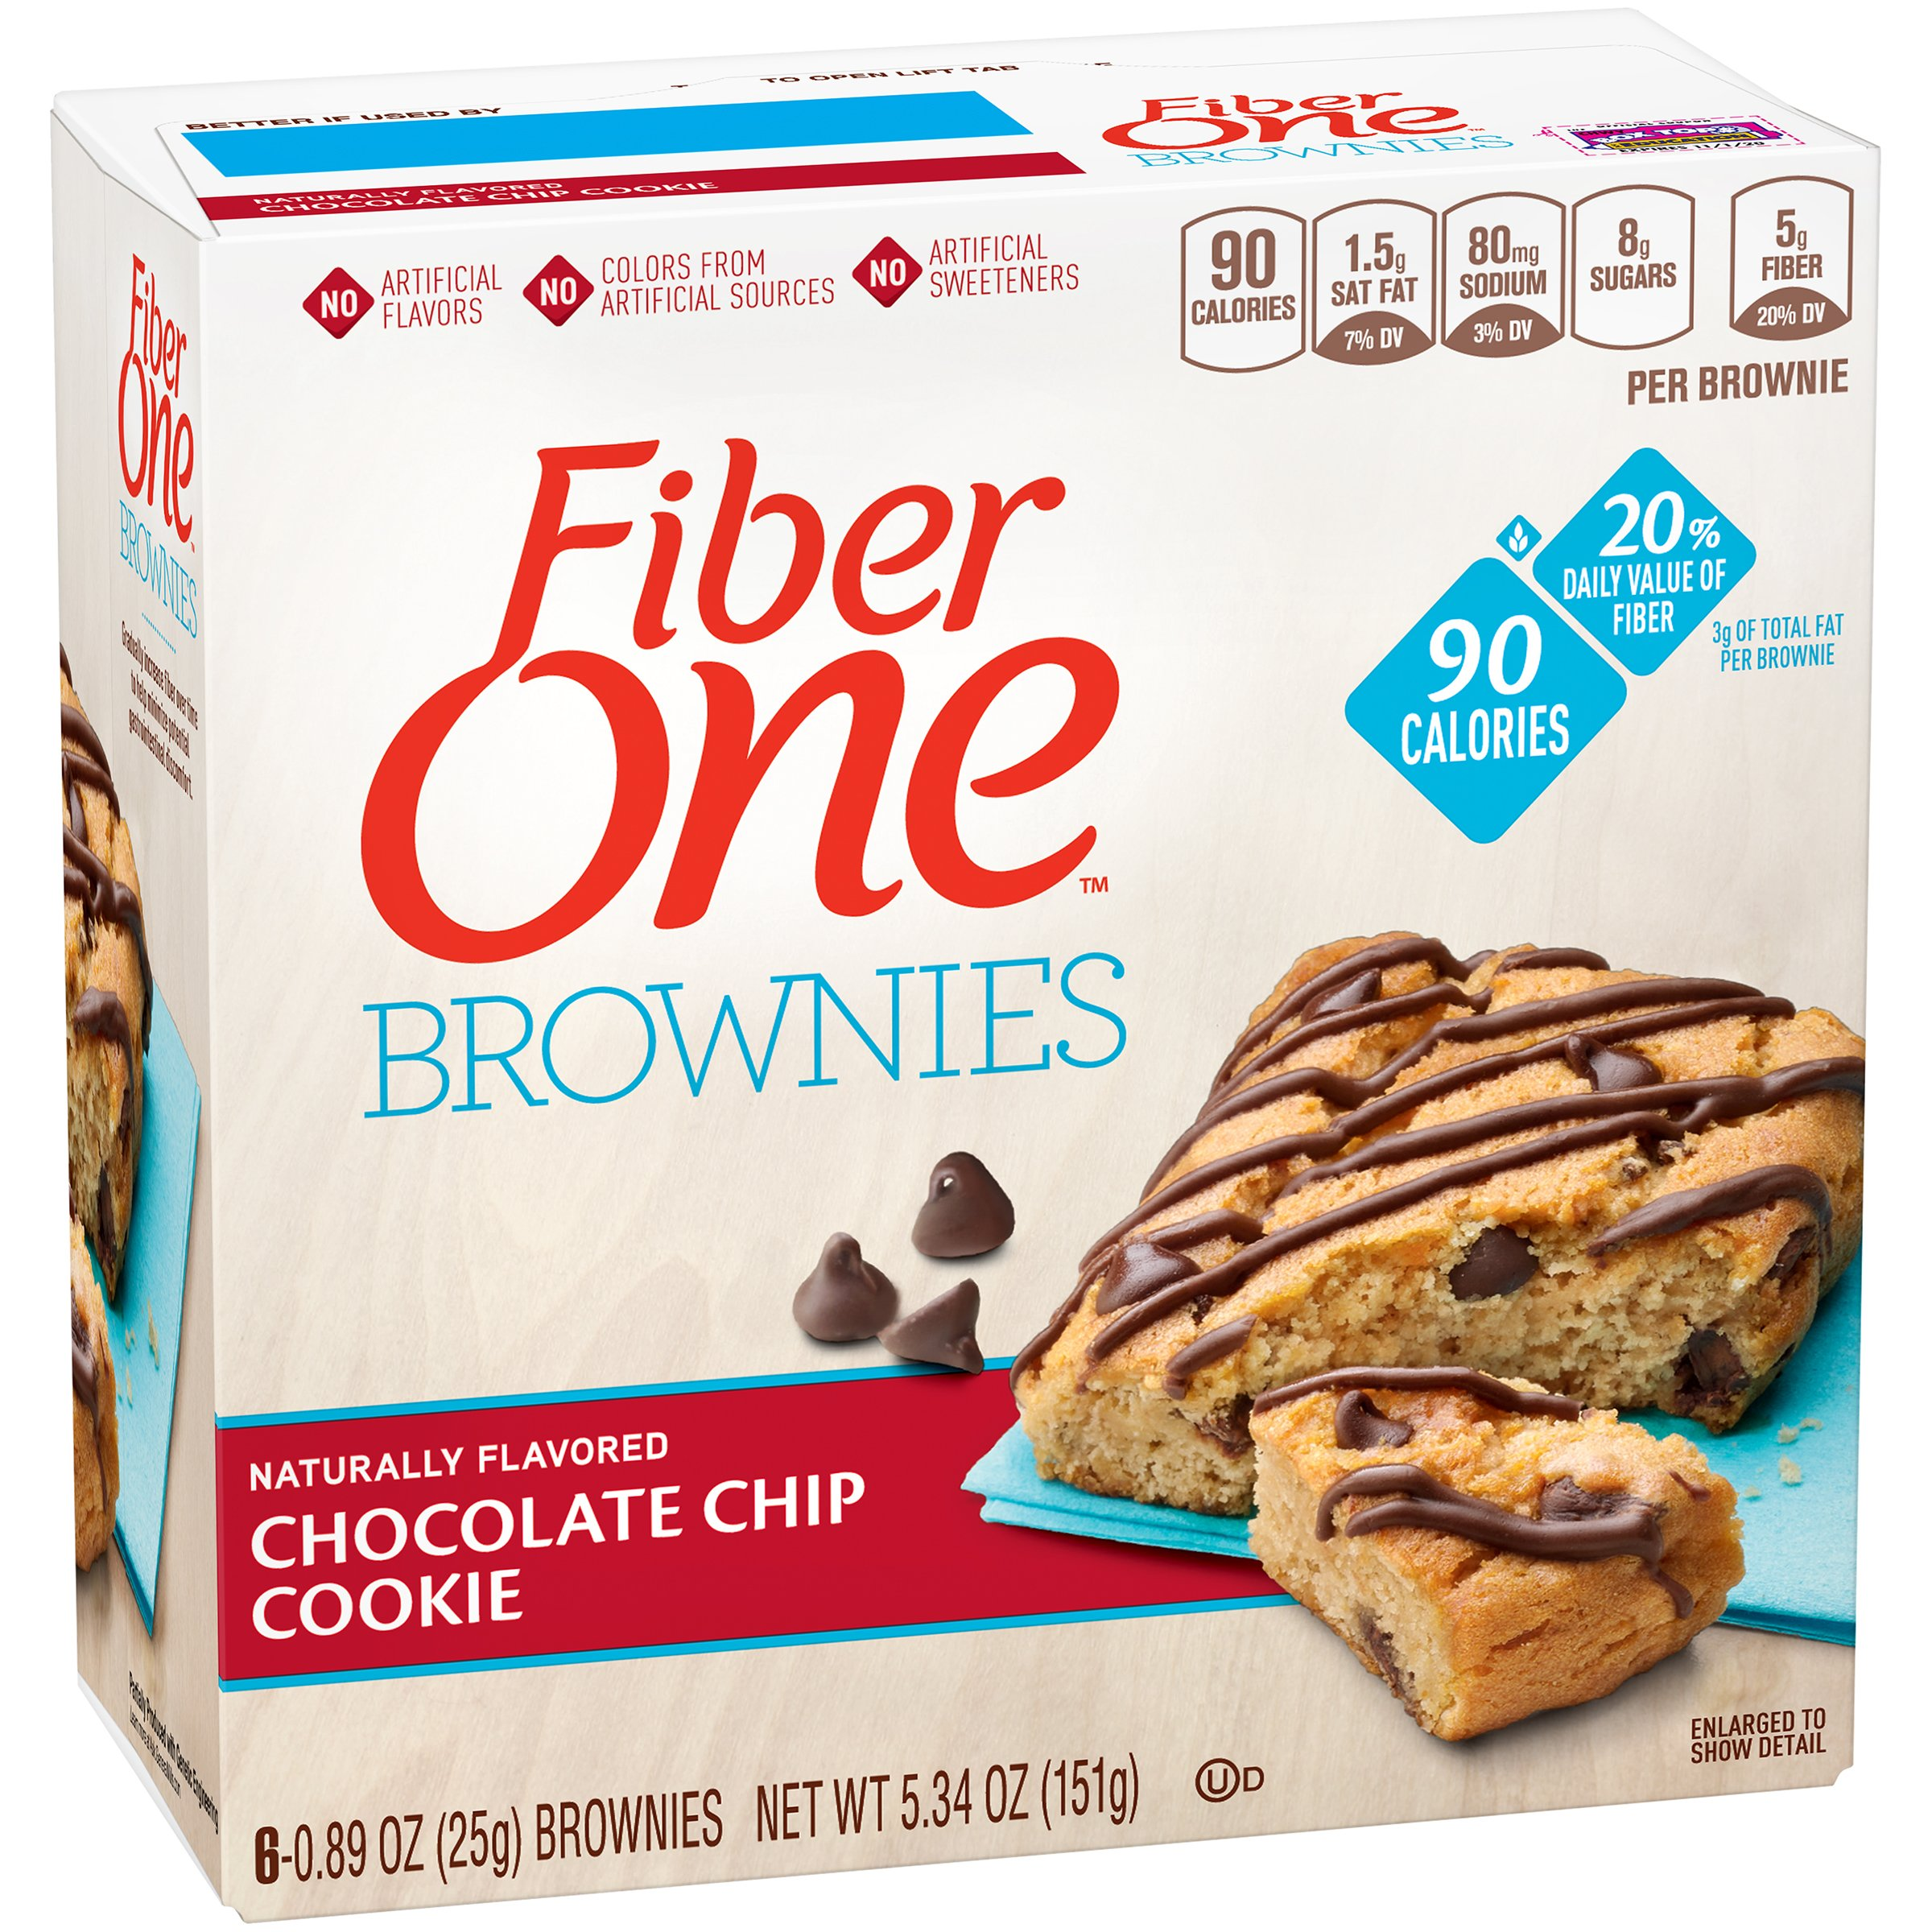 If your diet could use a little more fiber, save on the delicious products from Fiber One shopping with these manufacturer's coupons. While you might be skeptical that such healthy products can also taste good, one sample of their cereals, bars, brownies or cookies is sure to change your mind.